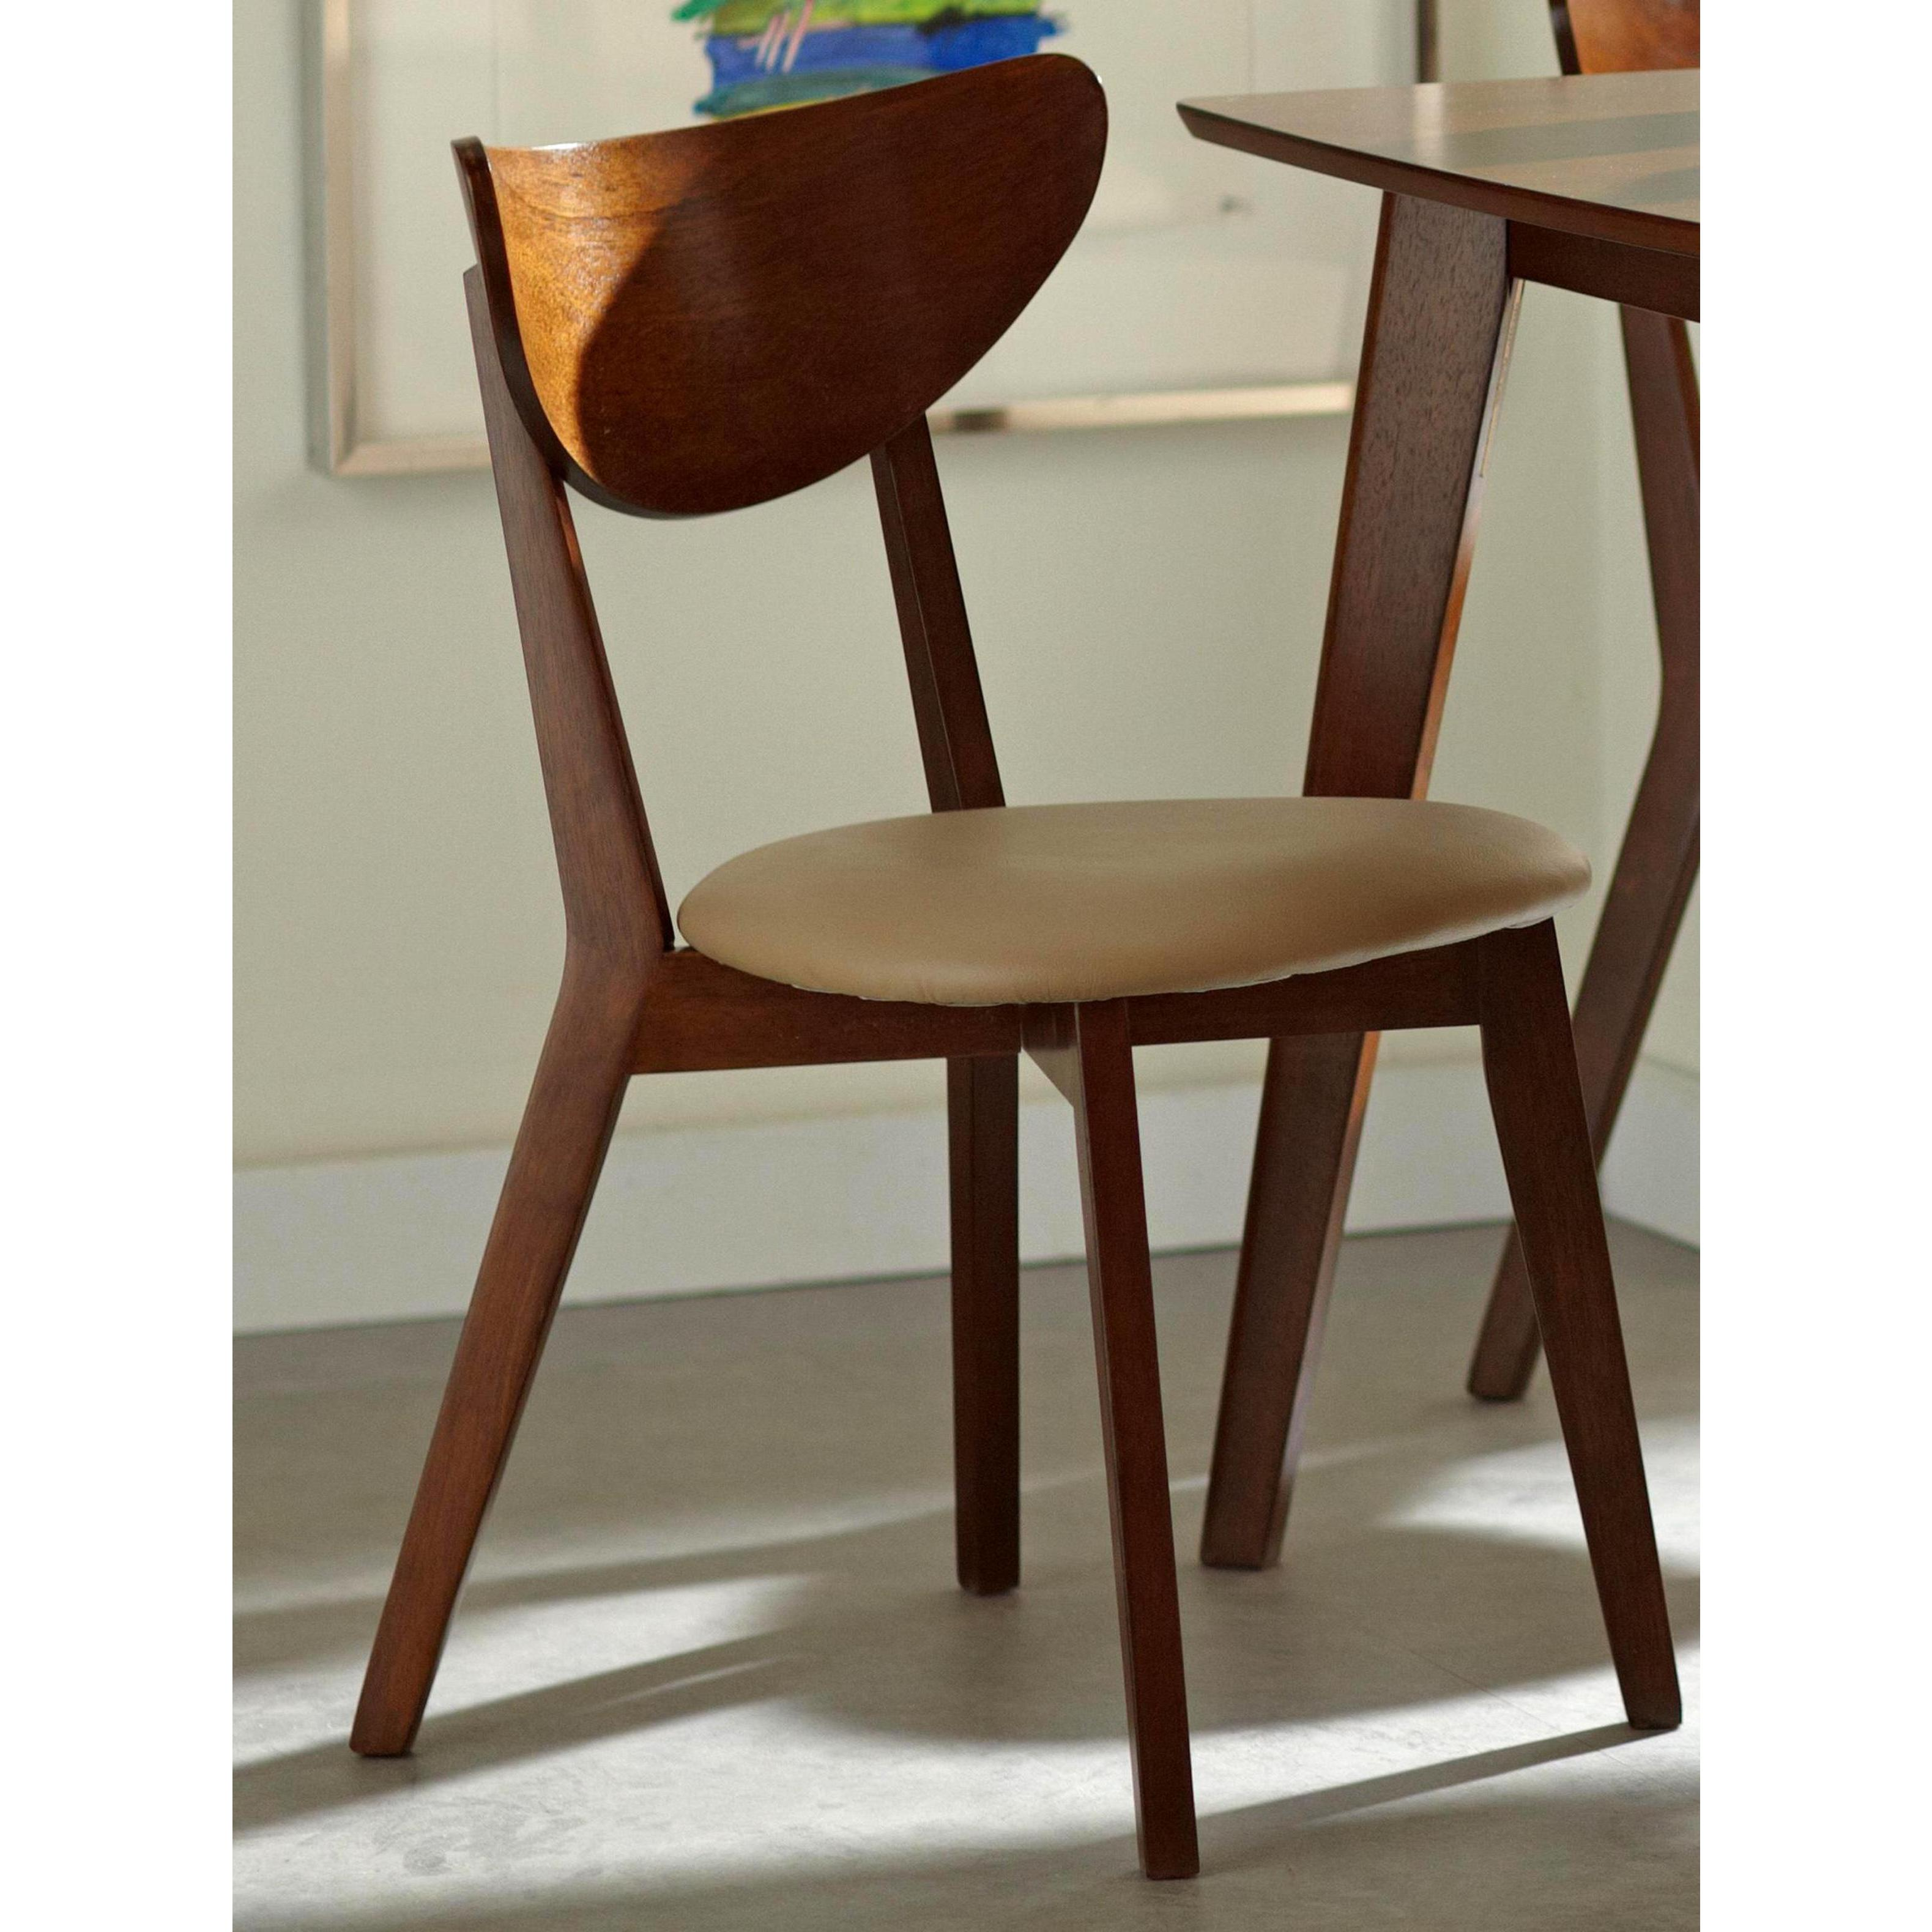 Peony Retro Mid Century Style Chestnut Finished Dining Chair Set Of 2 Overstock 9242061